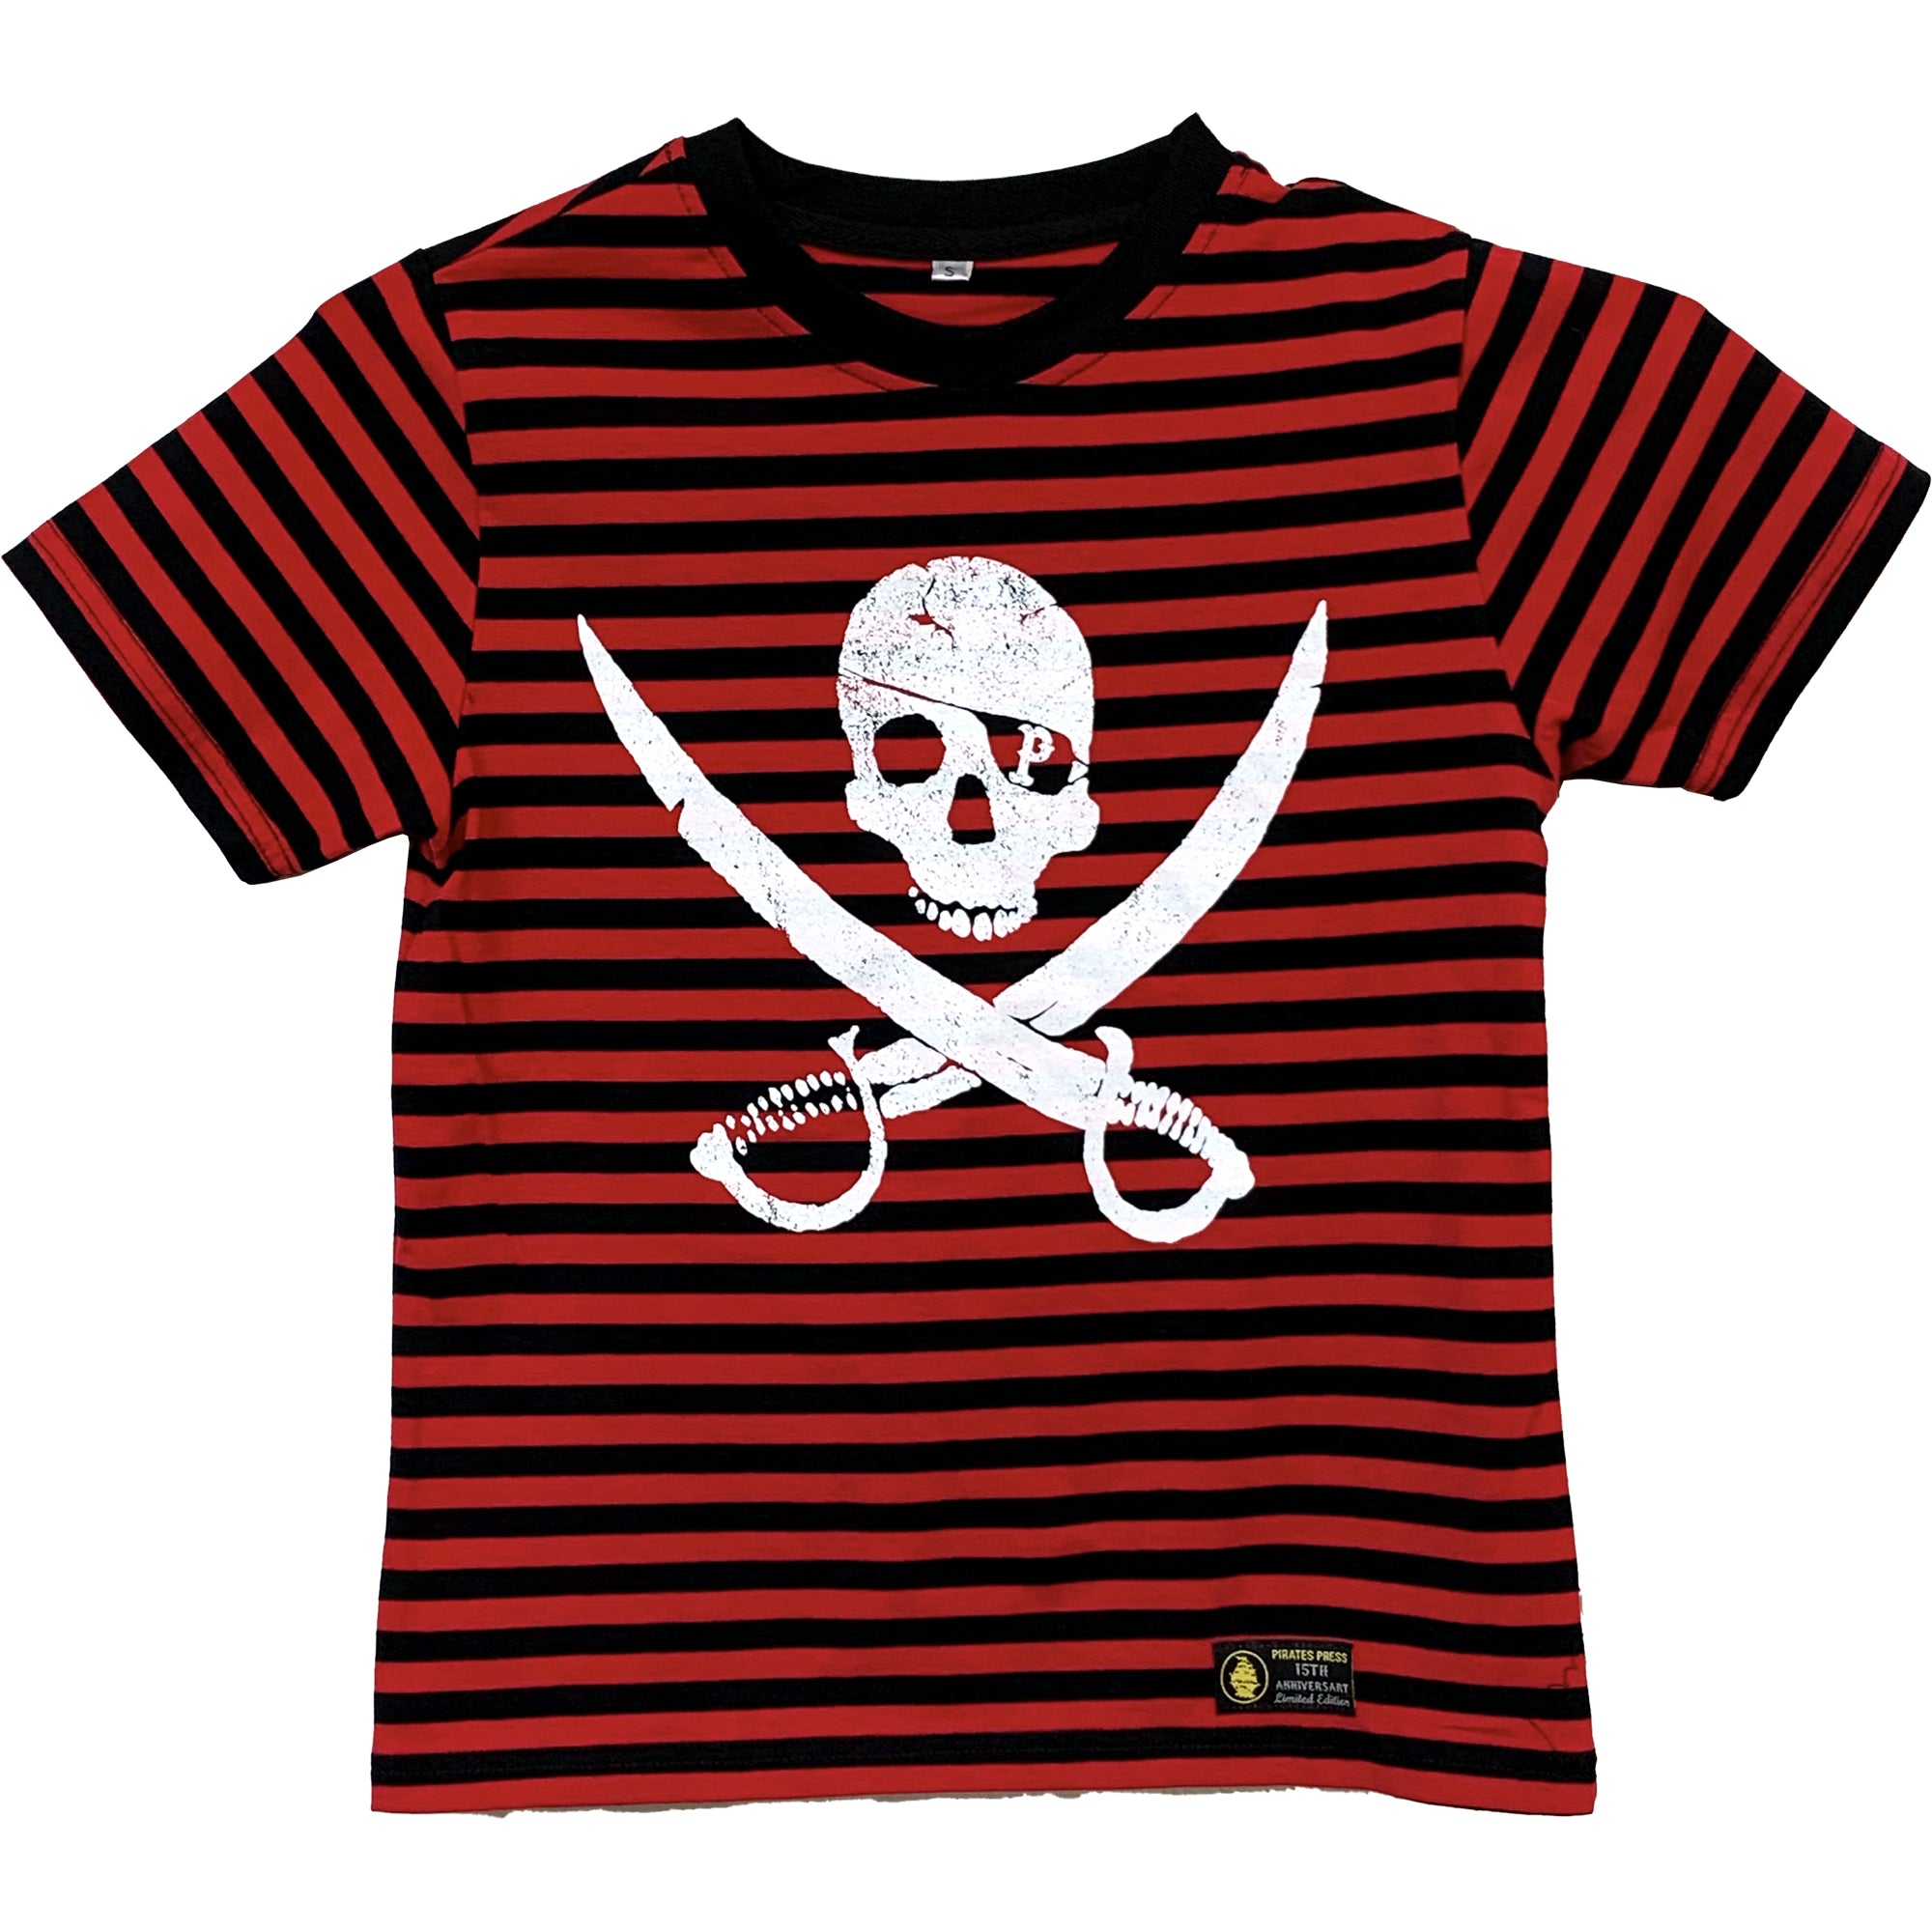 Pirates Press Records - Pirate Logo - White on Red & Black Striped  - 15 Year Tag - T-Shirt - Youth